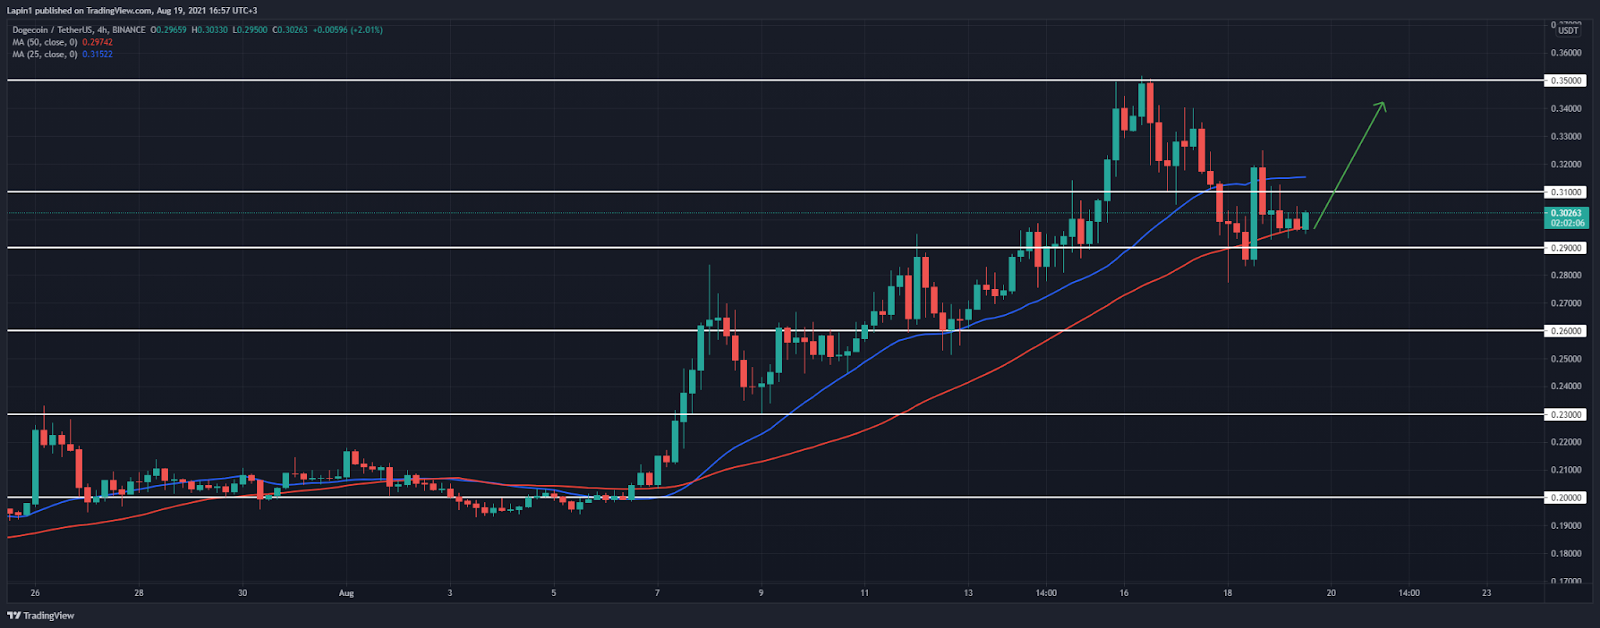 Dogecoin Price Analysis: DOGE consolidates above $0.29, prepares for another rally?